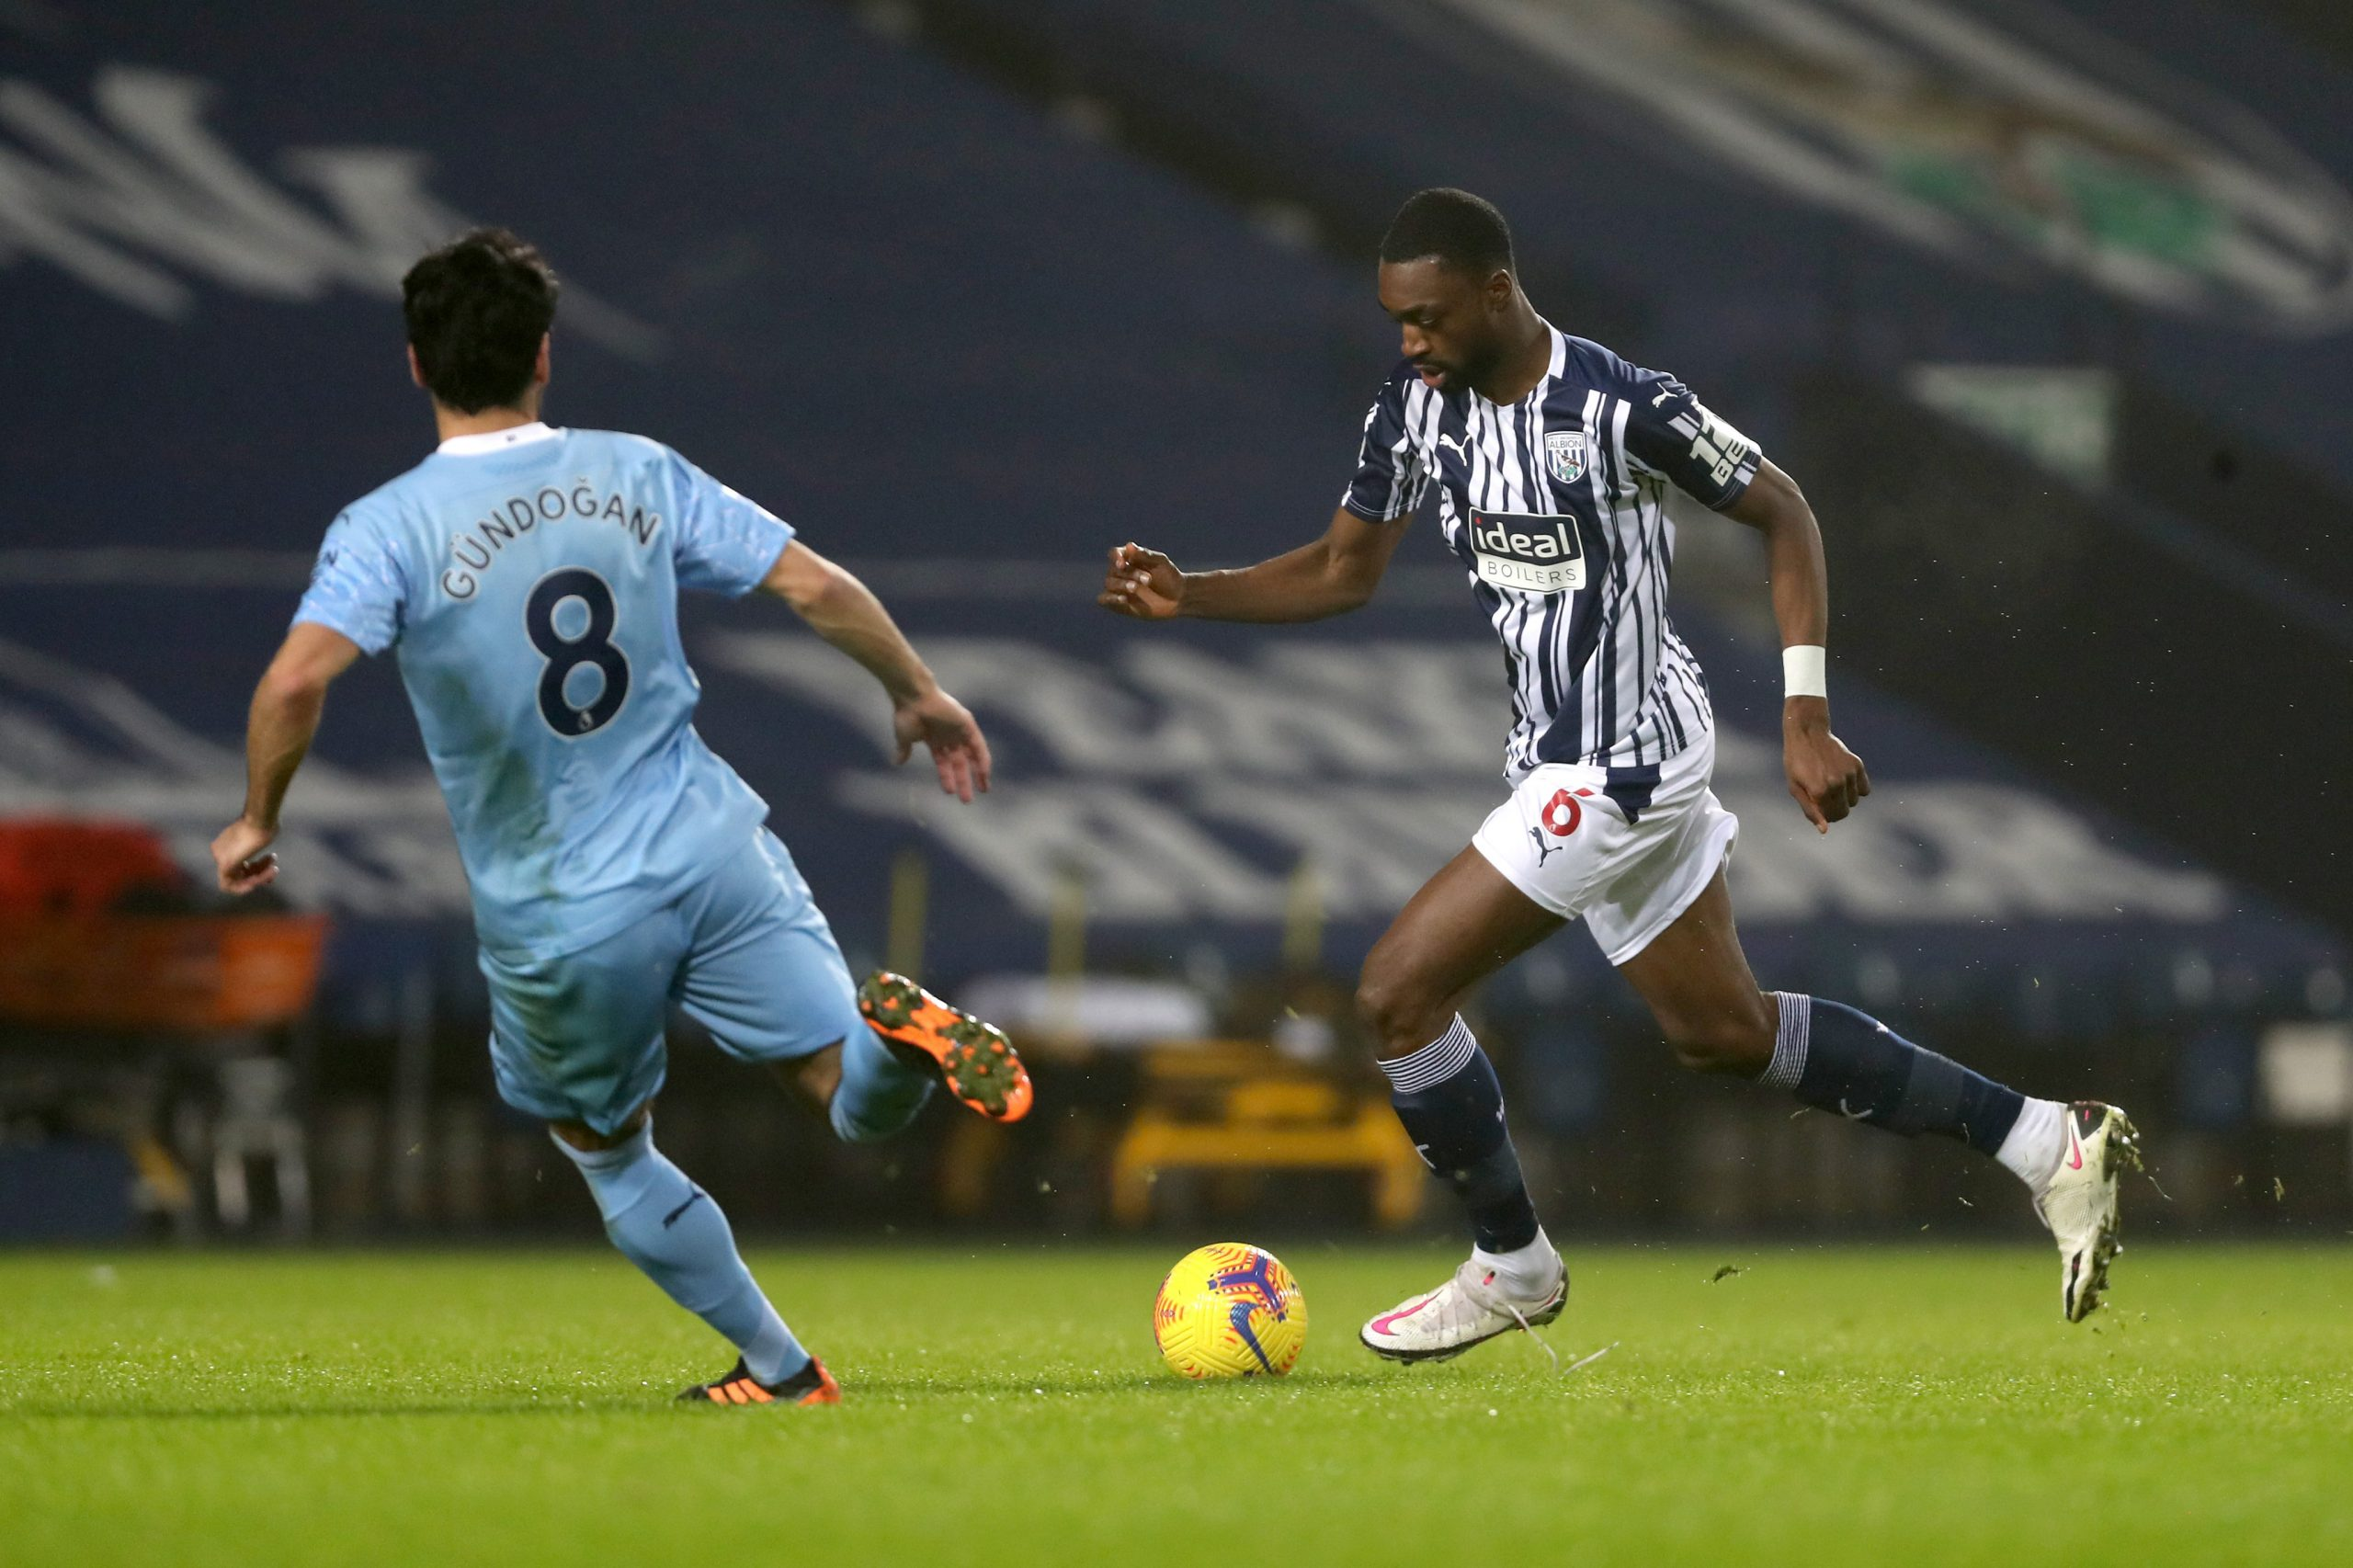 Premier League: Ajayi In Action As Man City Hammer West Brom; Saka On Target In Arsenal's Win At Southampton